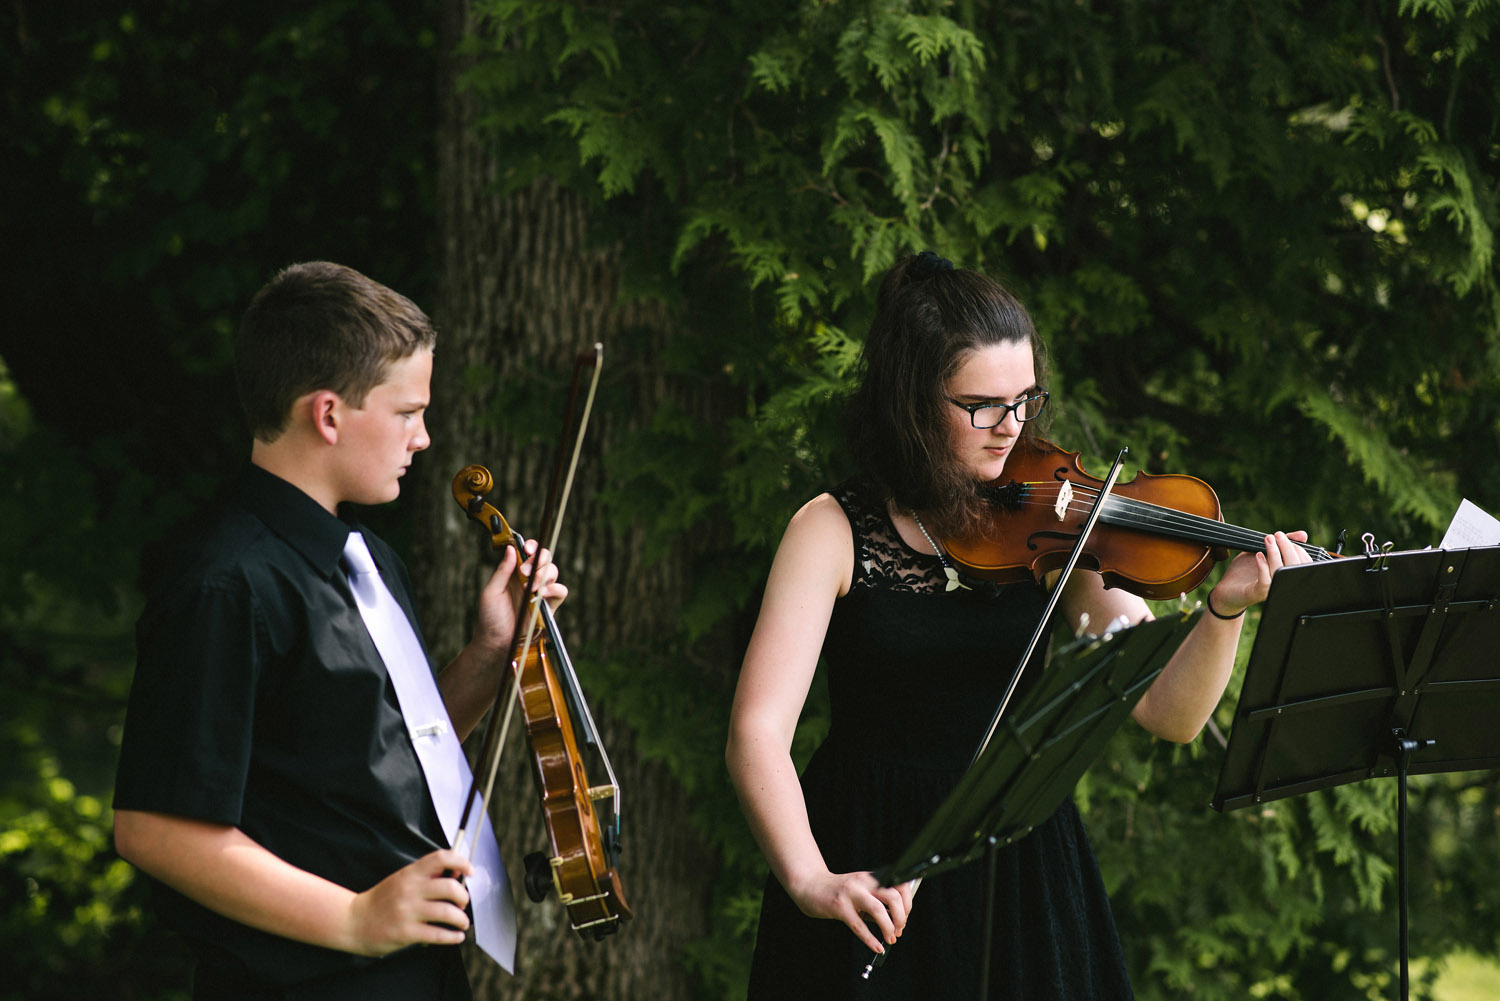 Live music for processional at outdoor wedding